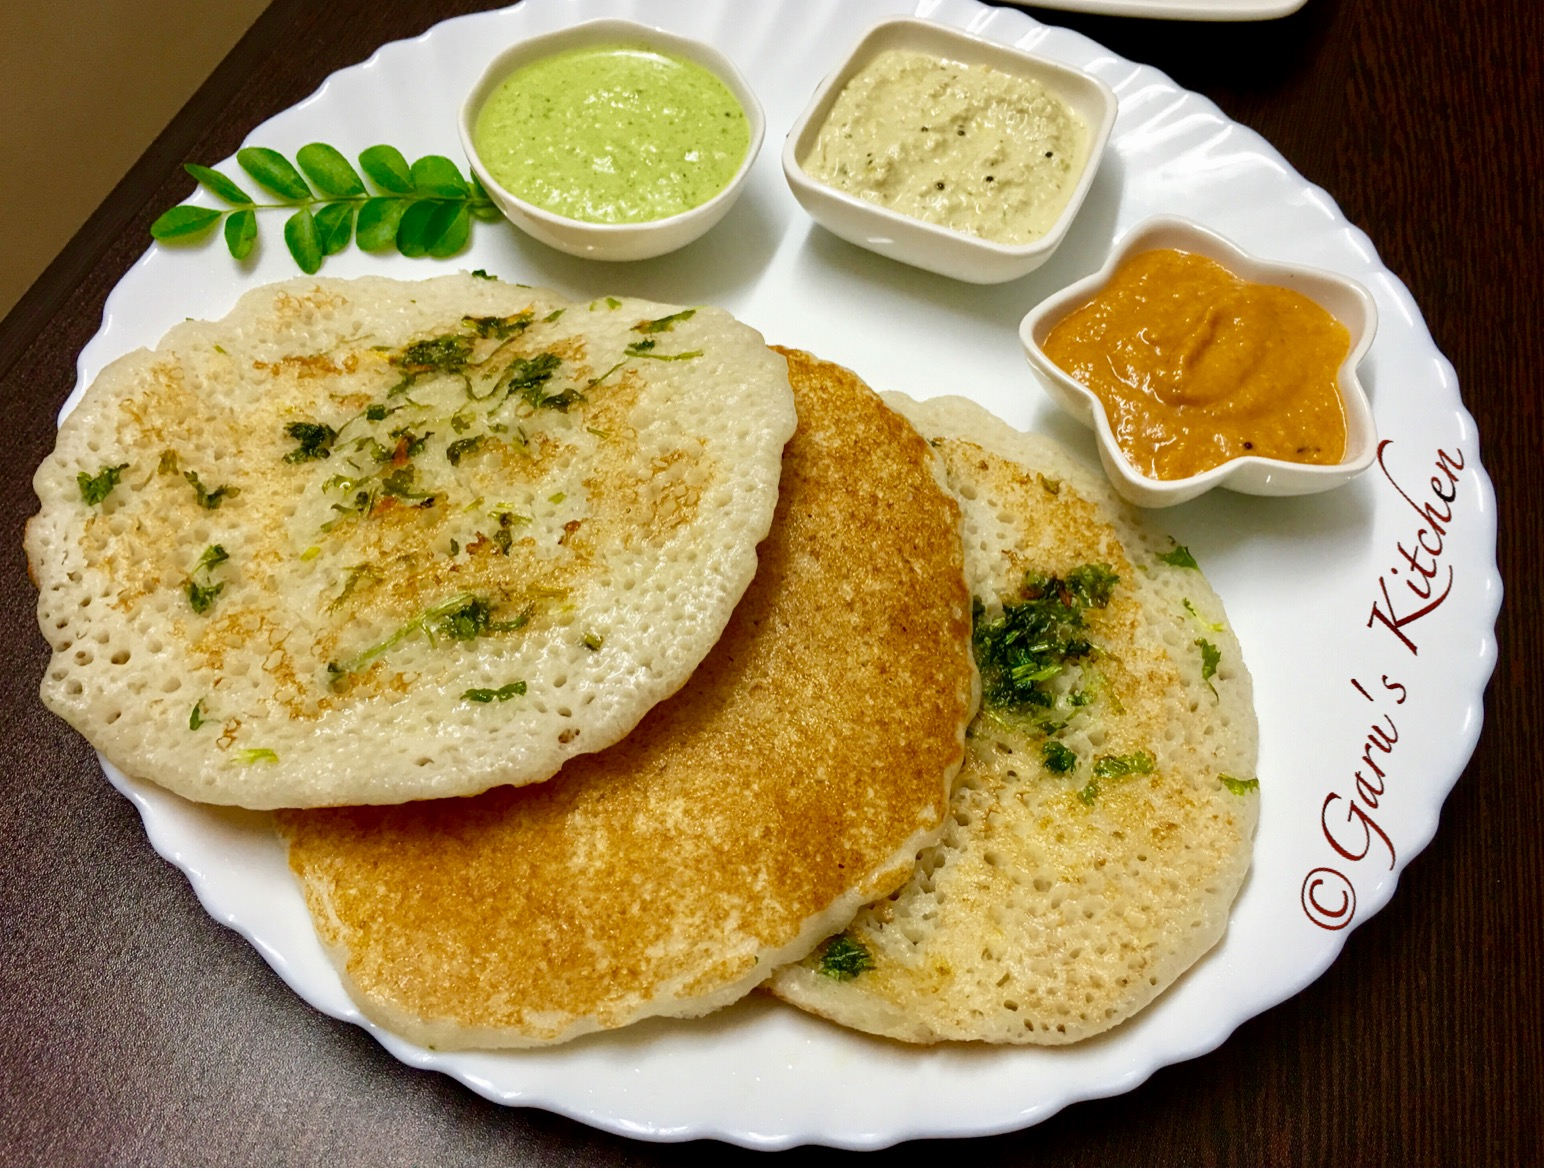 Garus kitchen by garima rastogi food recipes with step by step restaurant style set dosa recipe sponge dosa recipe south indian pancakes recipe set forumfinder